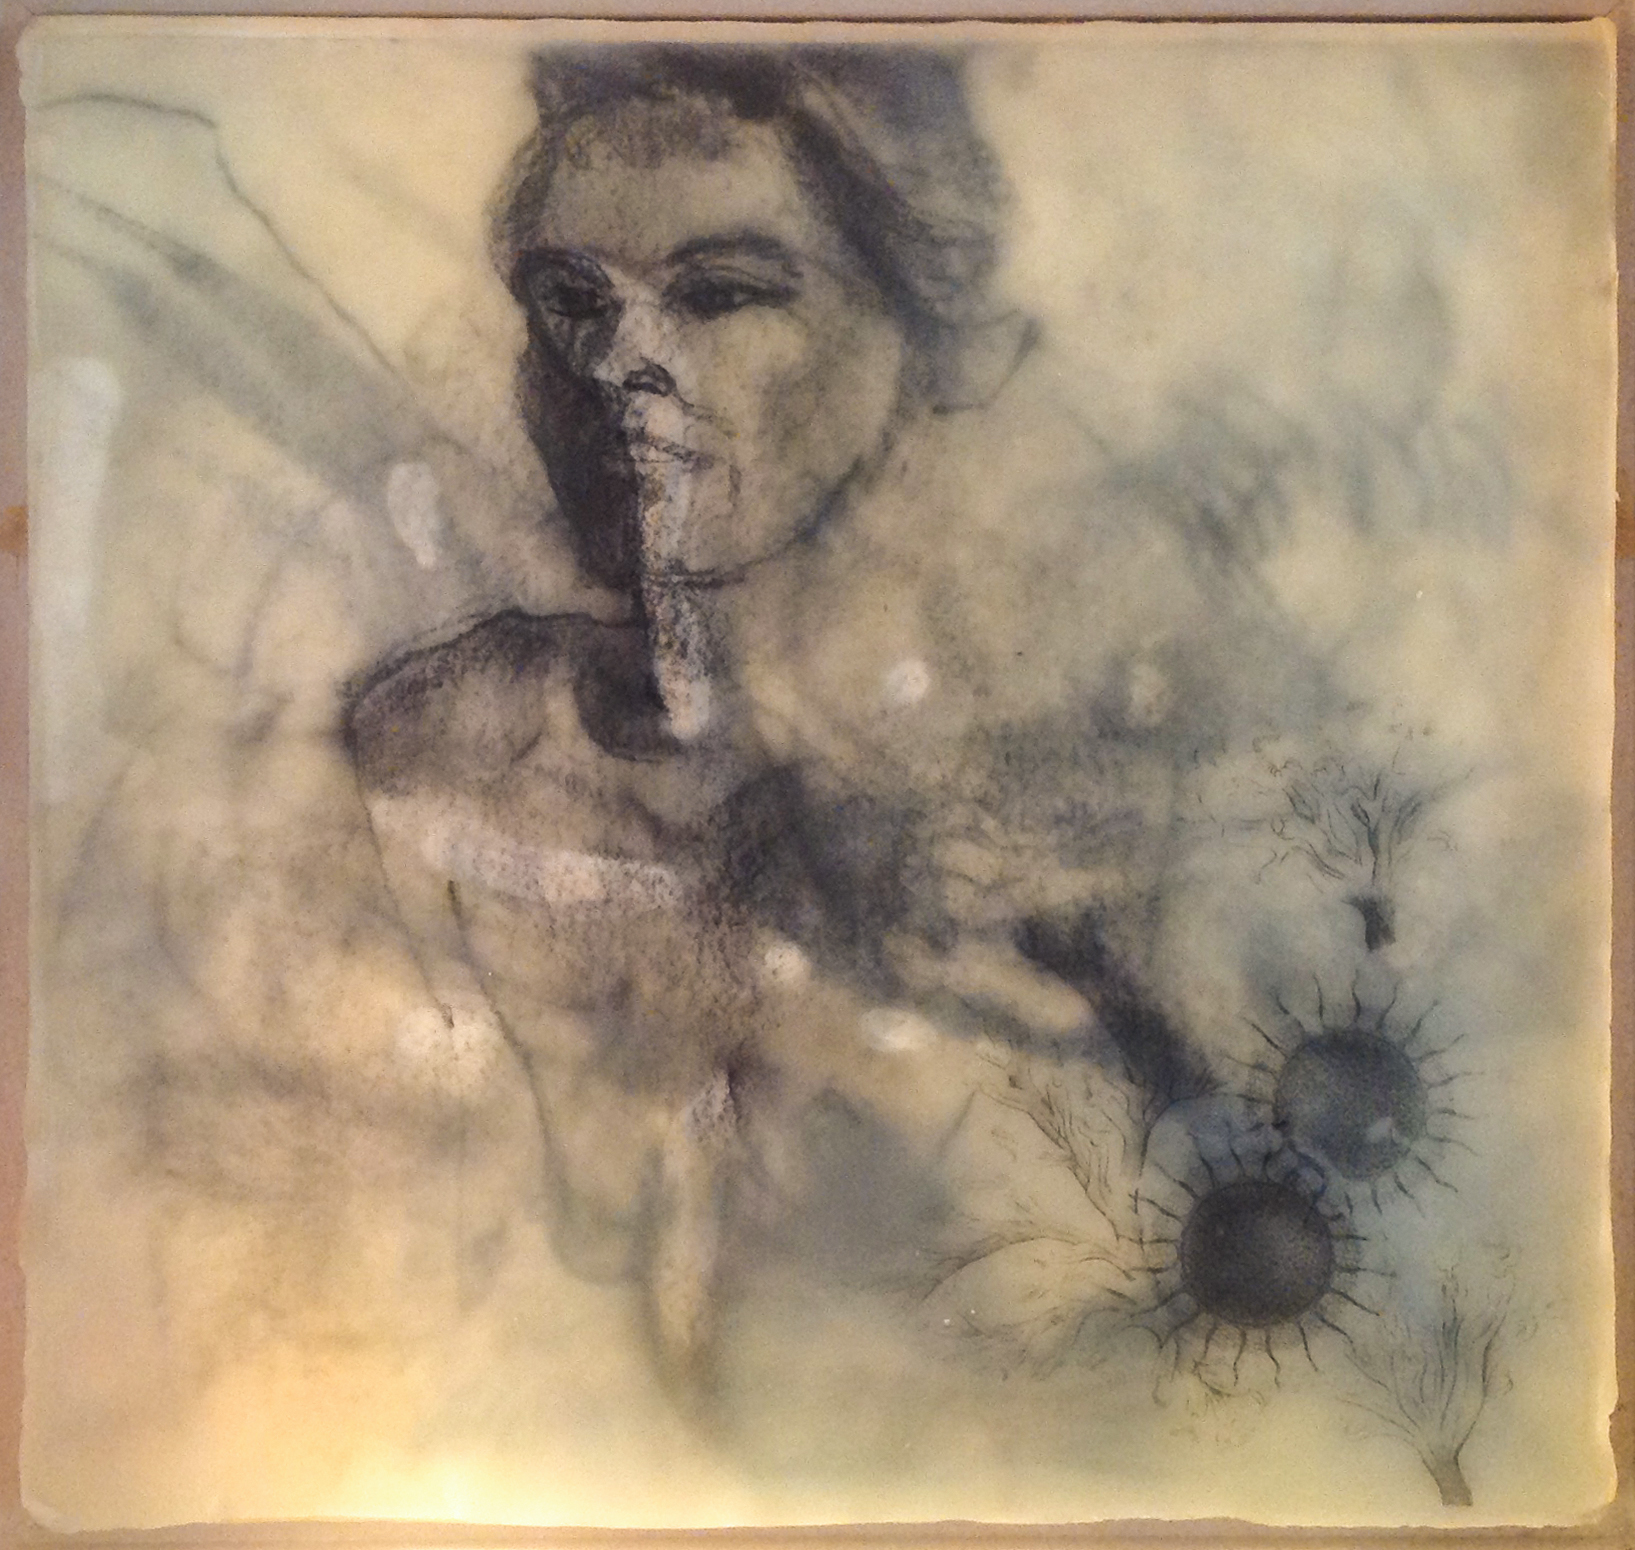 """Paste #2 - 2010 - Encaustic - 10"""" x 10"""" - Collection of Bill Reybold"""